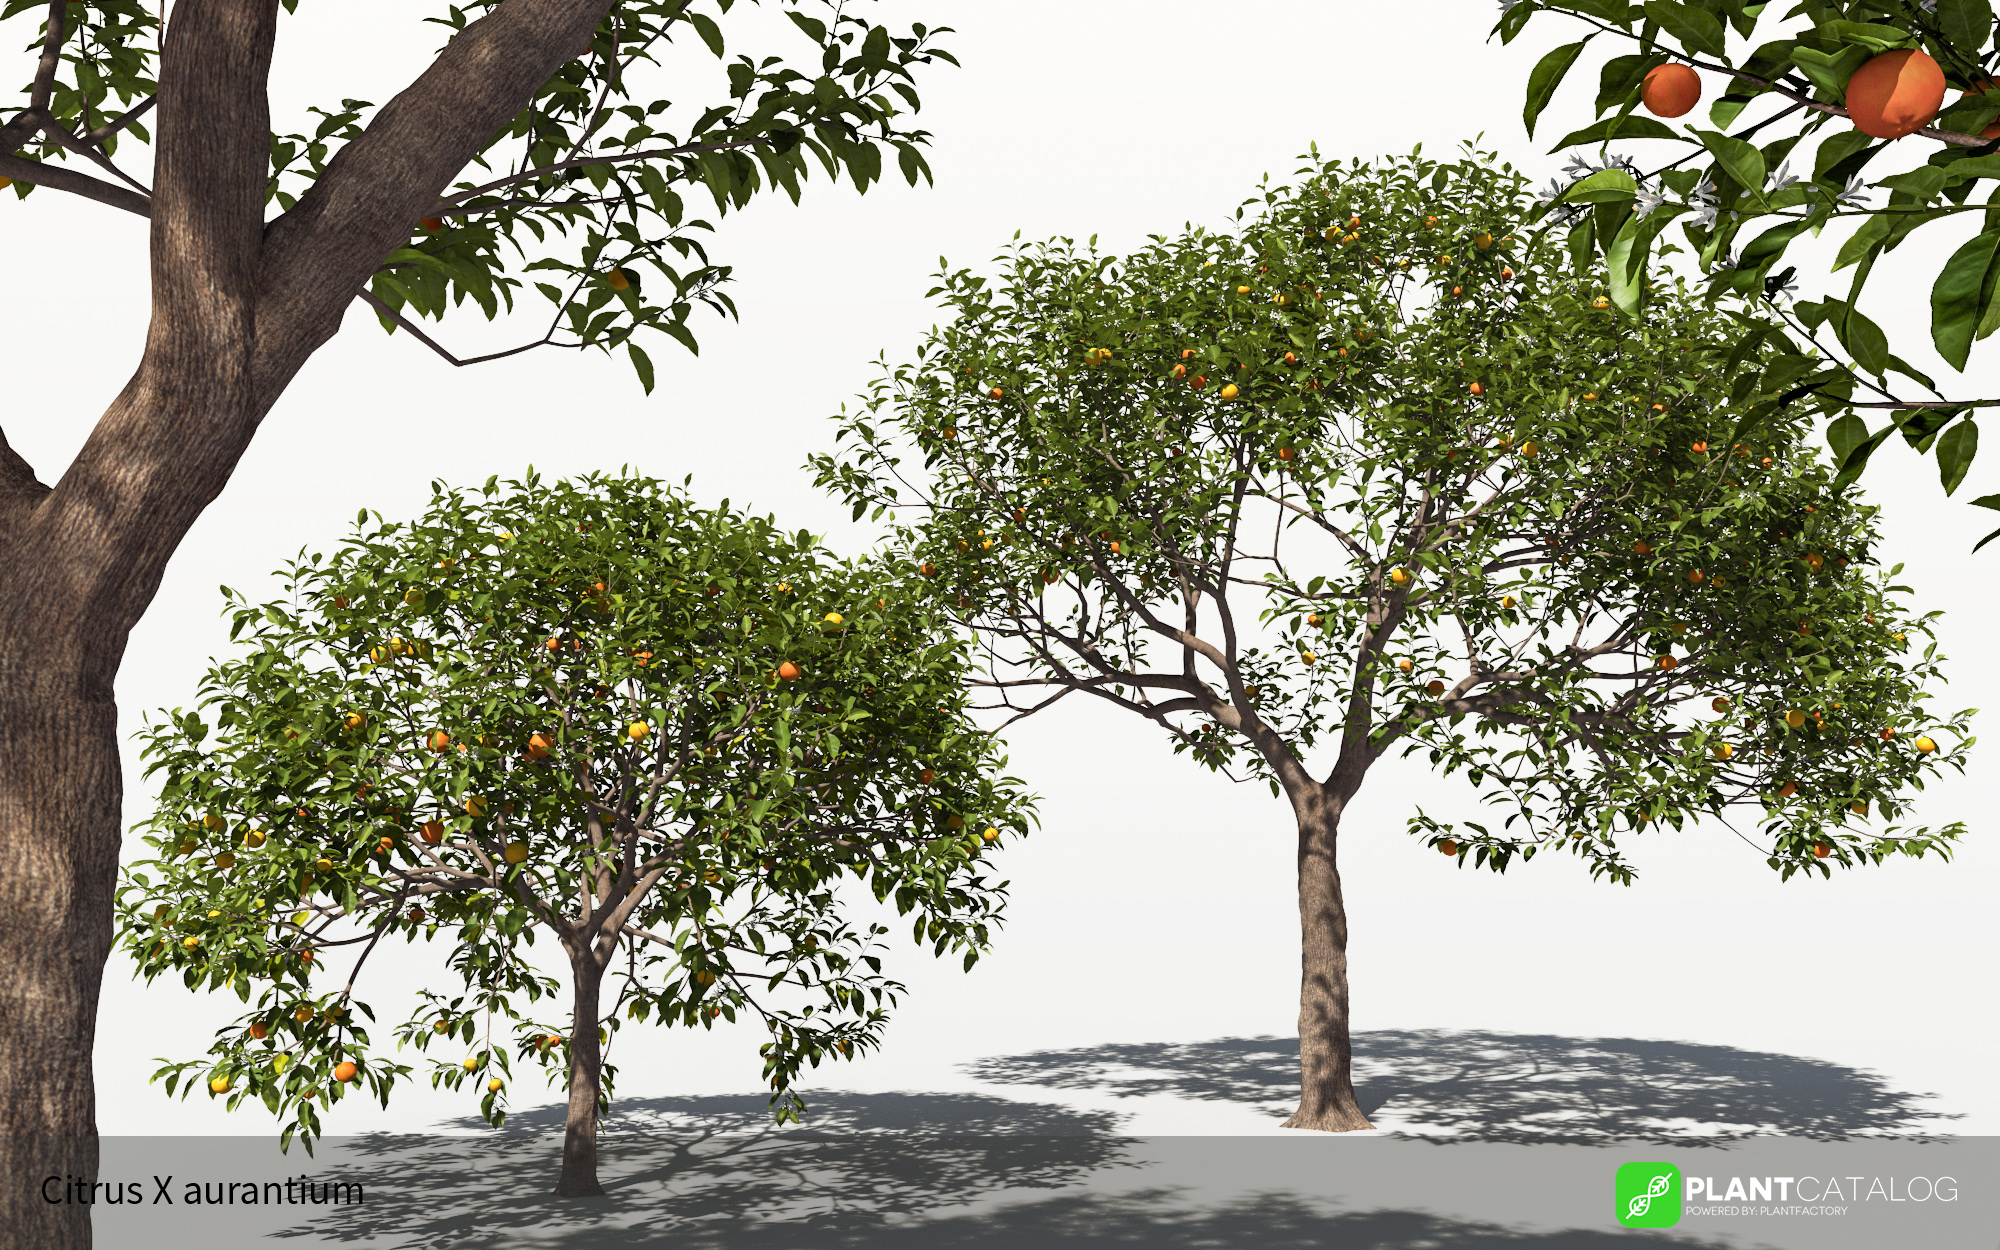 3D model of the Sour orange - Citrus x aurantium - from the PlantCatalog, rendered in VUE